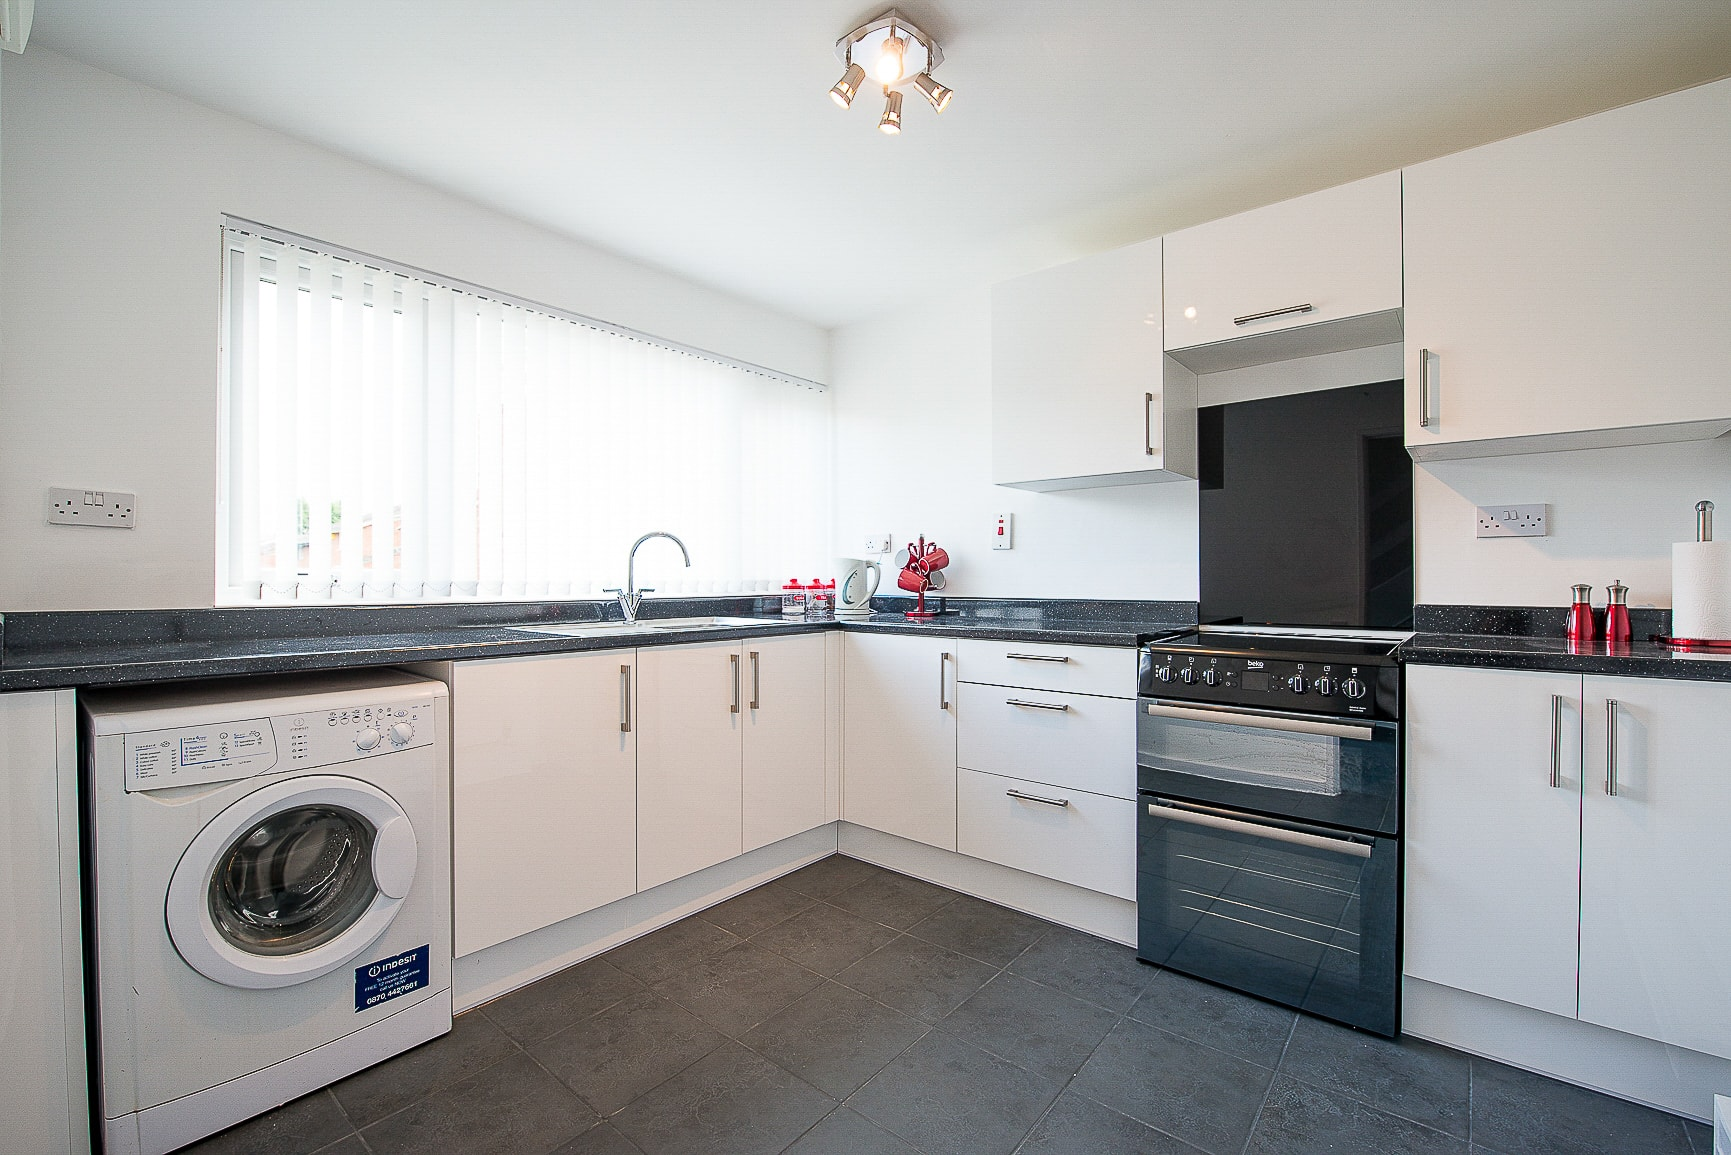 An immaculate kitchen on a property viewing with Michael Anthony Estate Agents